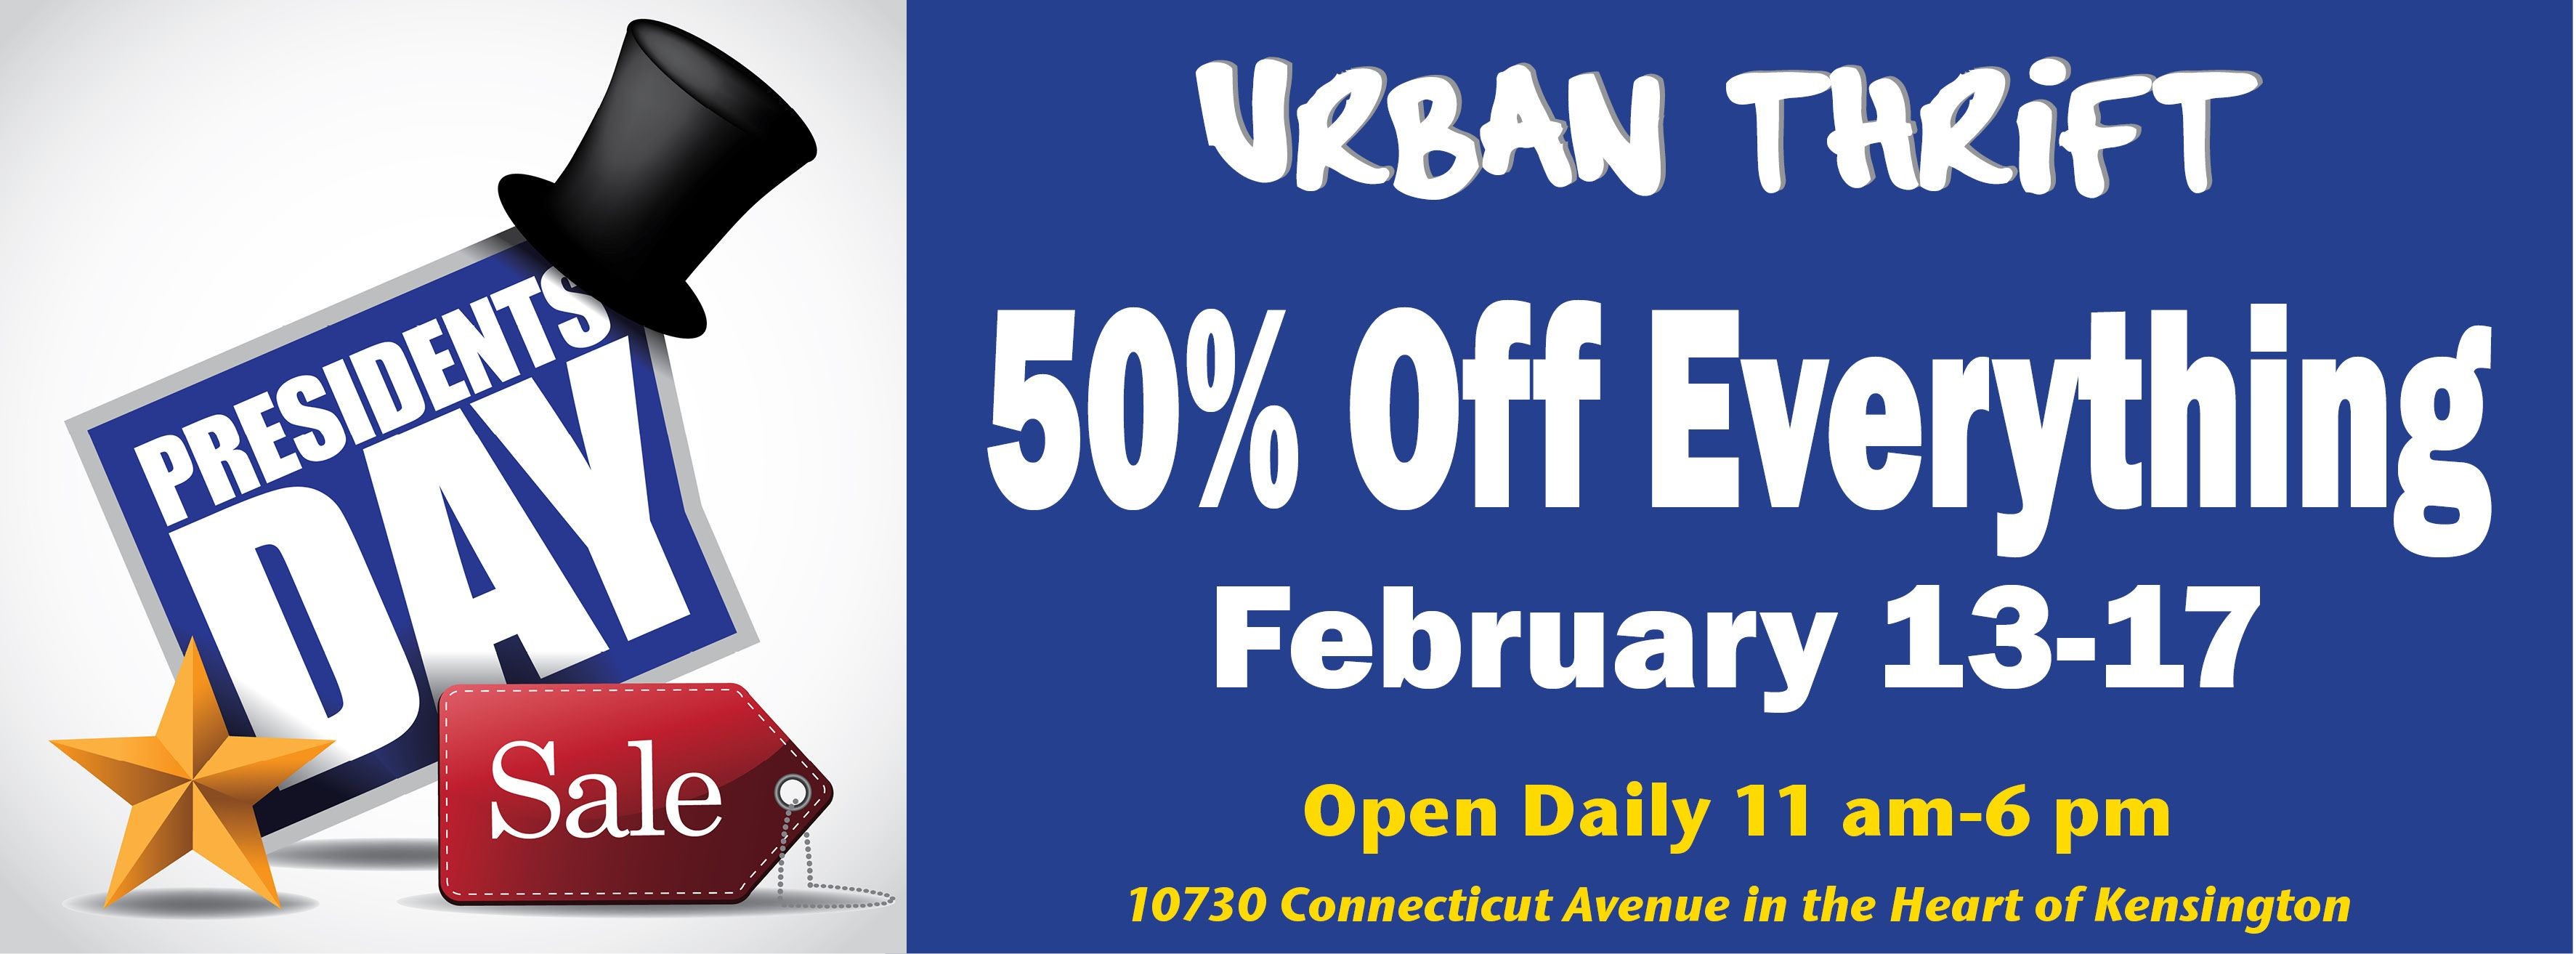 Urban Thrift President's Day Sale